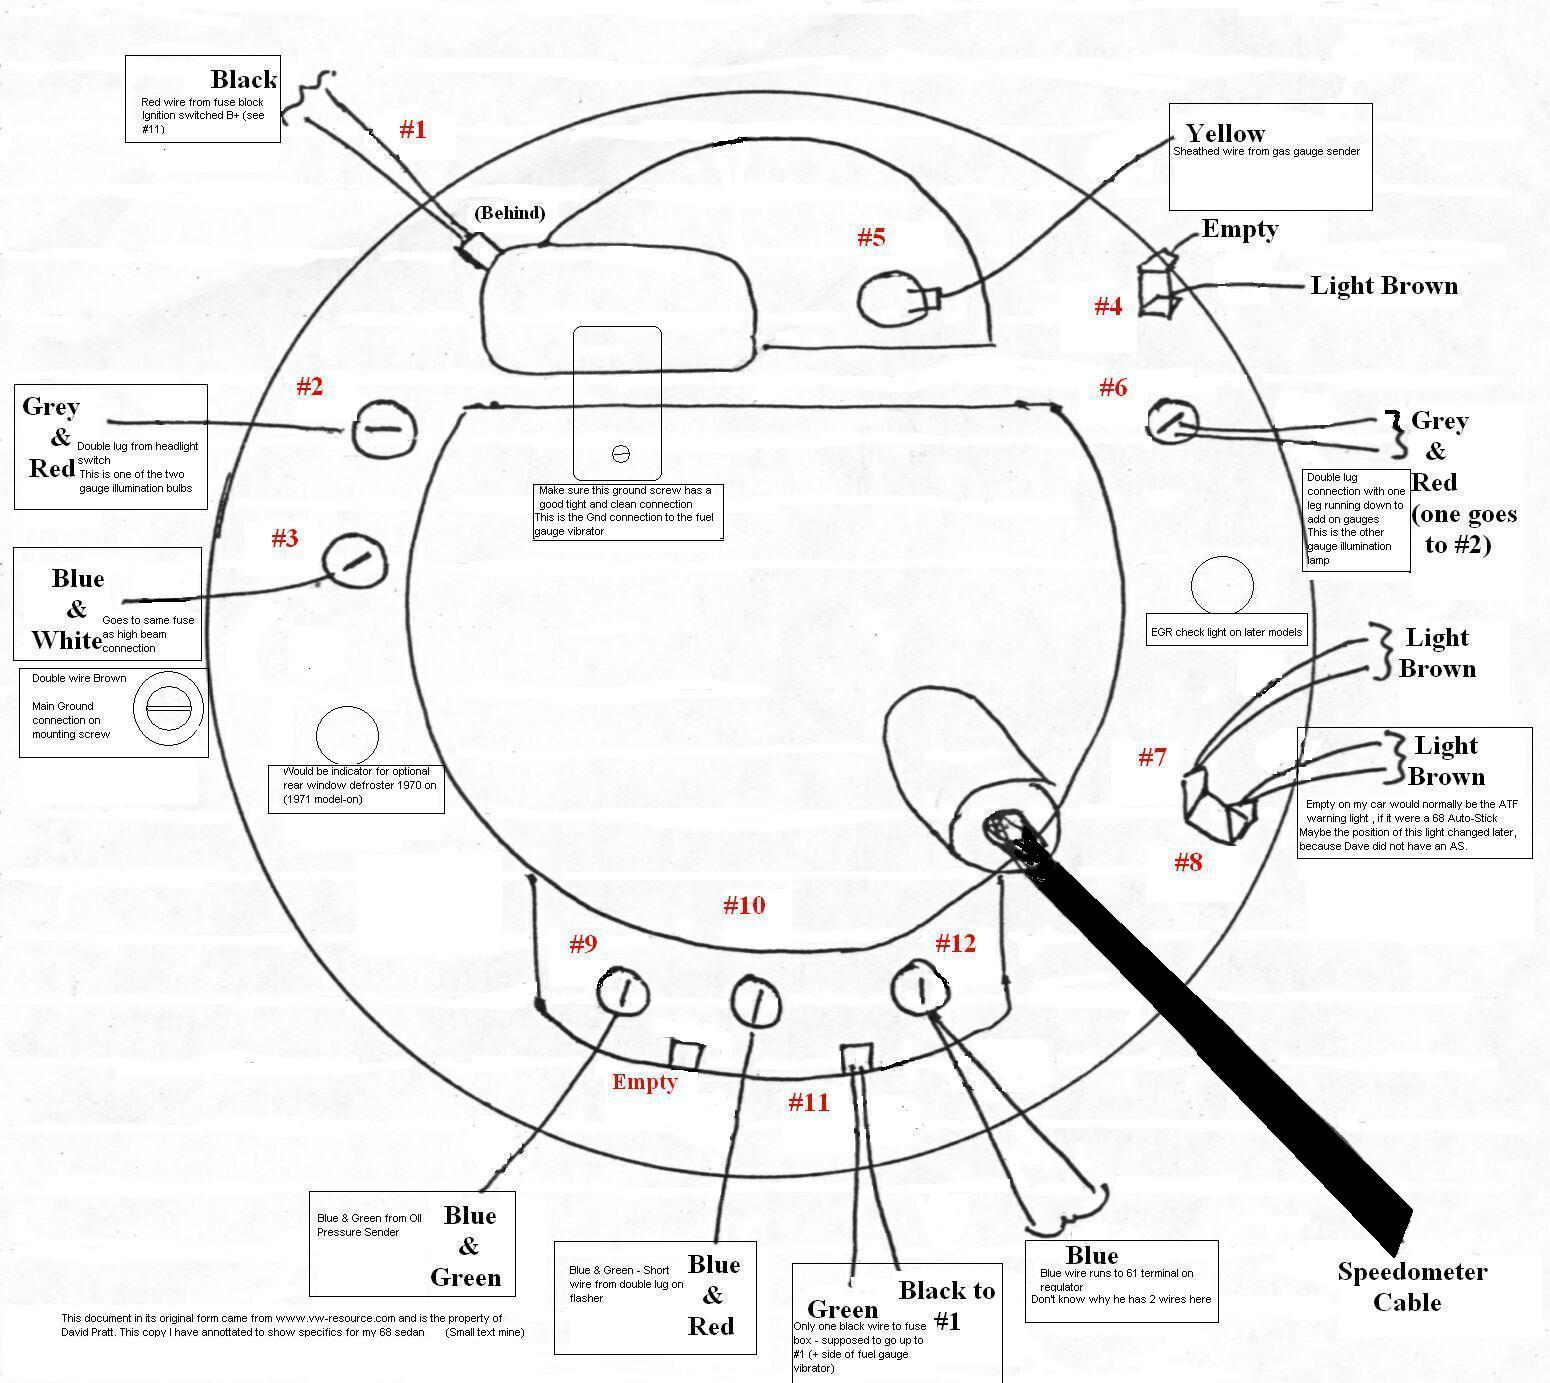 Tachometer Diagram Volkswagen 1973 Wiring Diagrams 2010 Camaro Headlight Wire Thesamba Com Beetle Late Model Super 1968 Up View Schematic